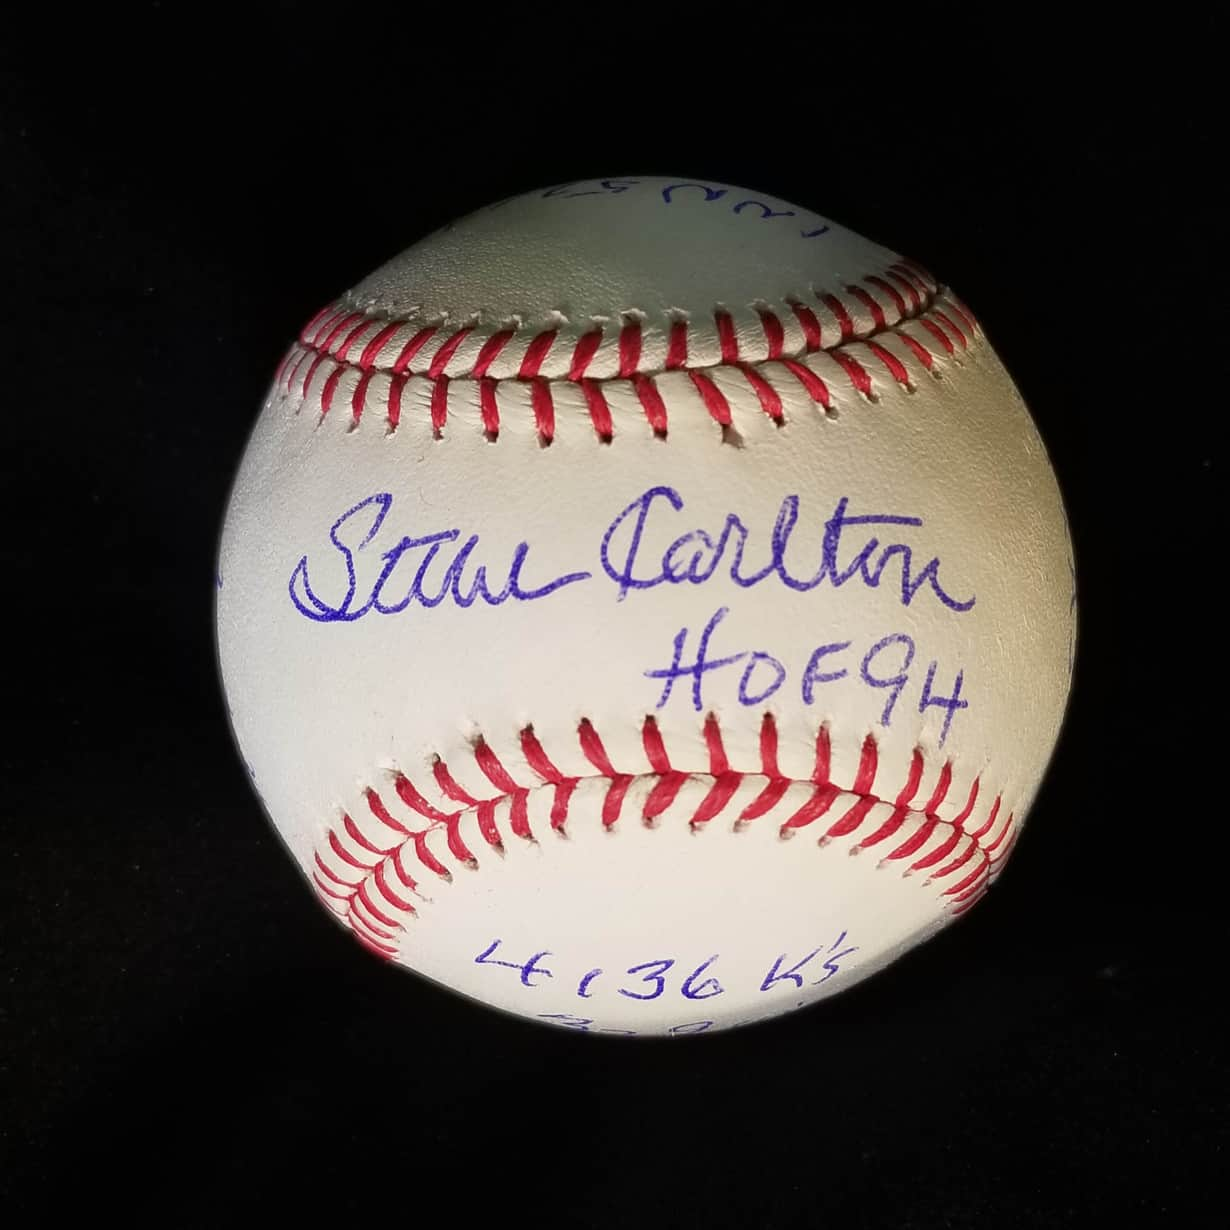 "Baseball-mlb Steve Carlton Autograph Signed Omlb Inscribed ""329 Ws"" Authenticated"